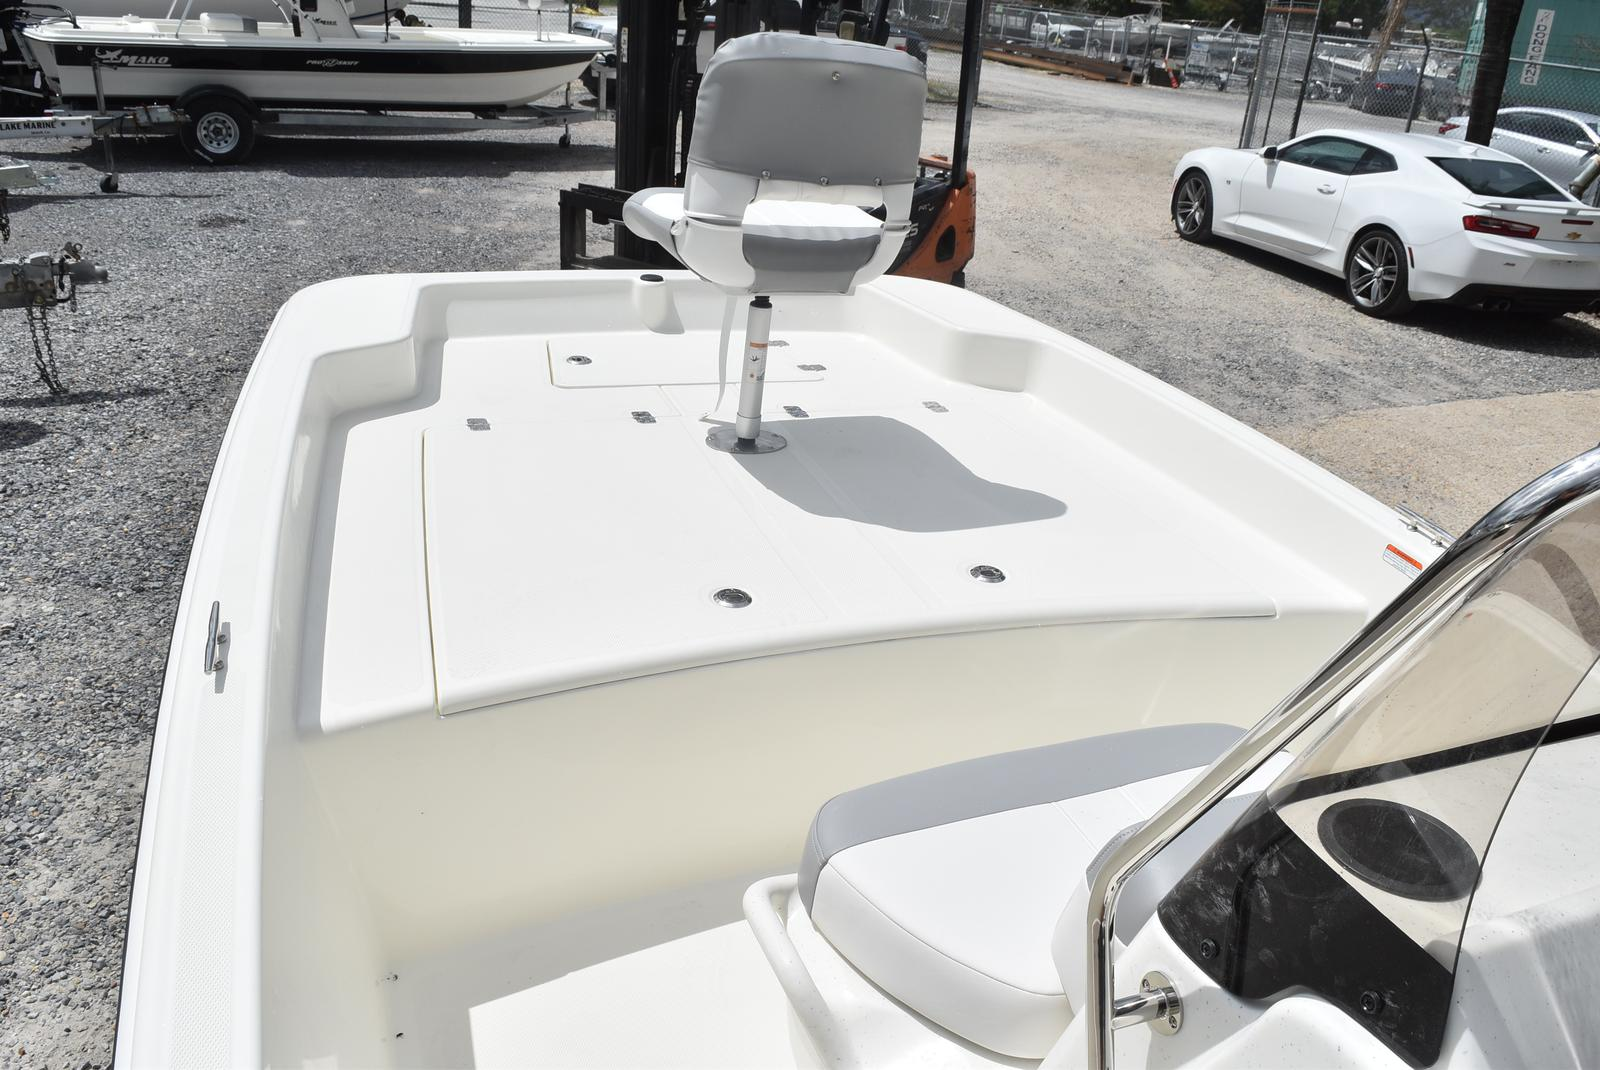 2020 Mako boat for sale, model of the boat is Pro Skiff 17, 75 ELPT & Image # 451 of 702